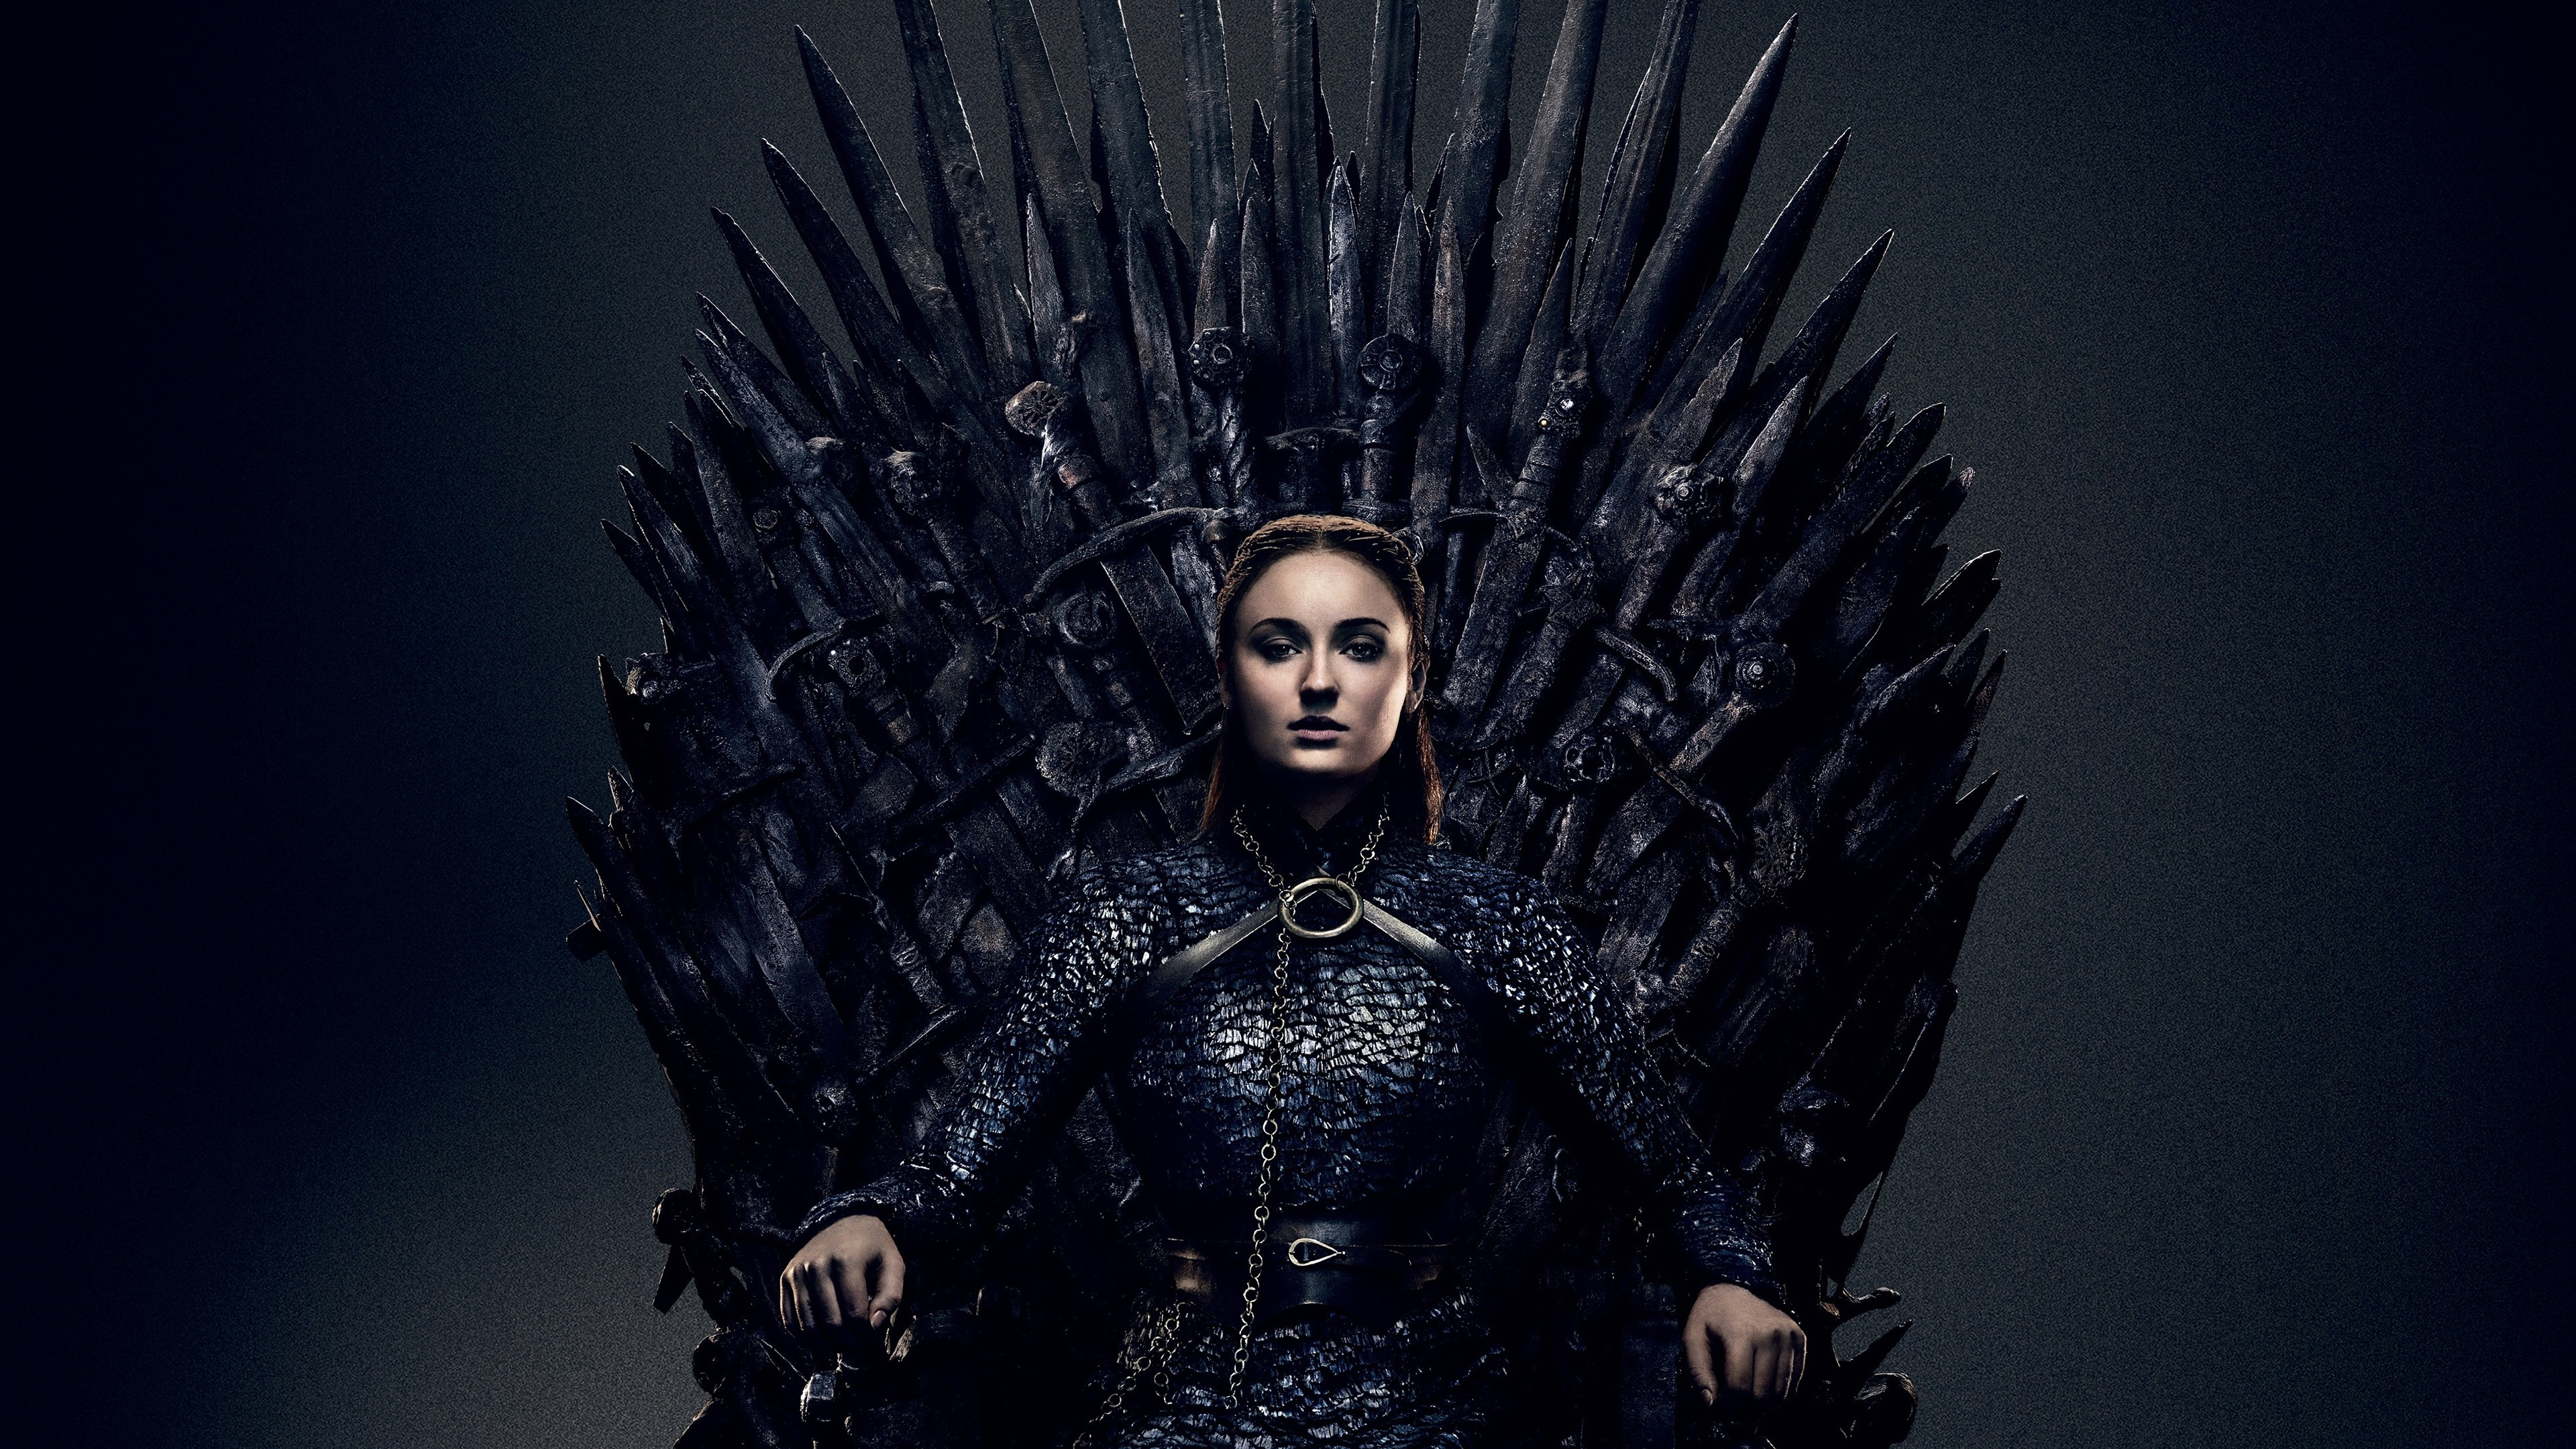 game of thrones season 8 4k download